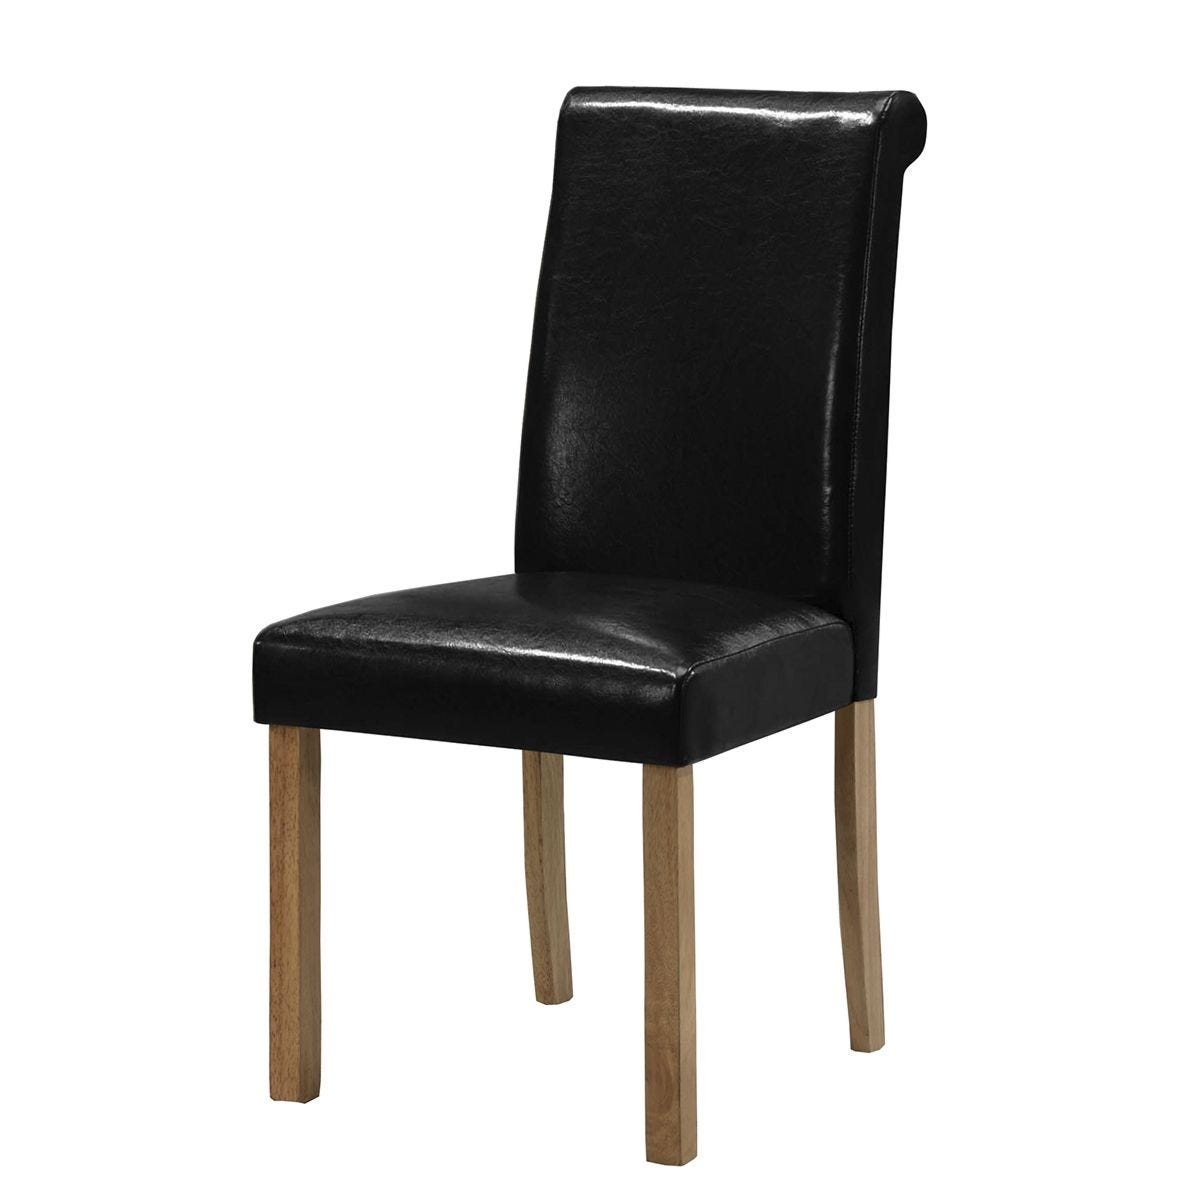 Set Of 2 Jasper Solid Rubberwood Chairs With Faux Leather Seats - Black